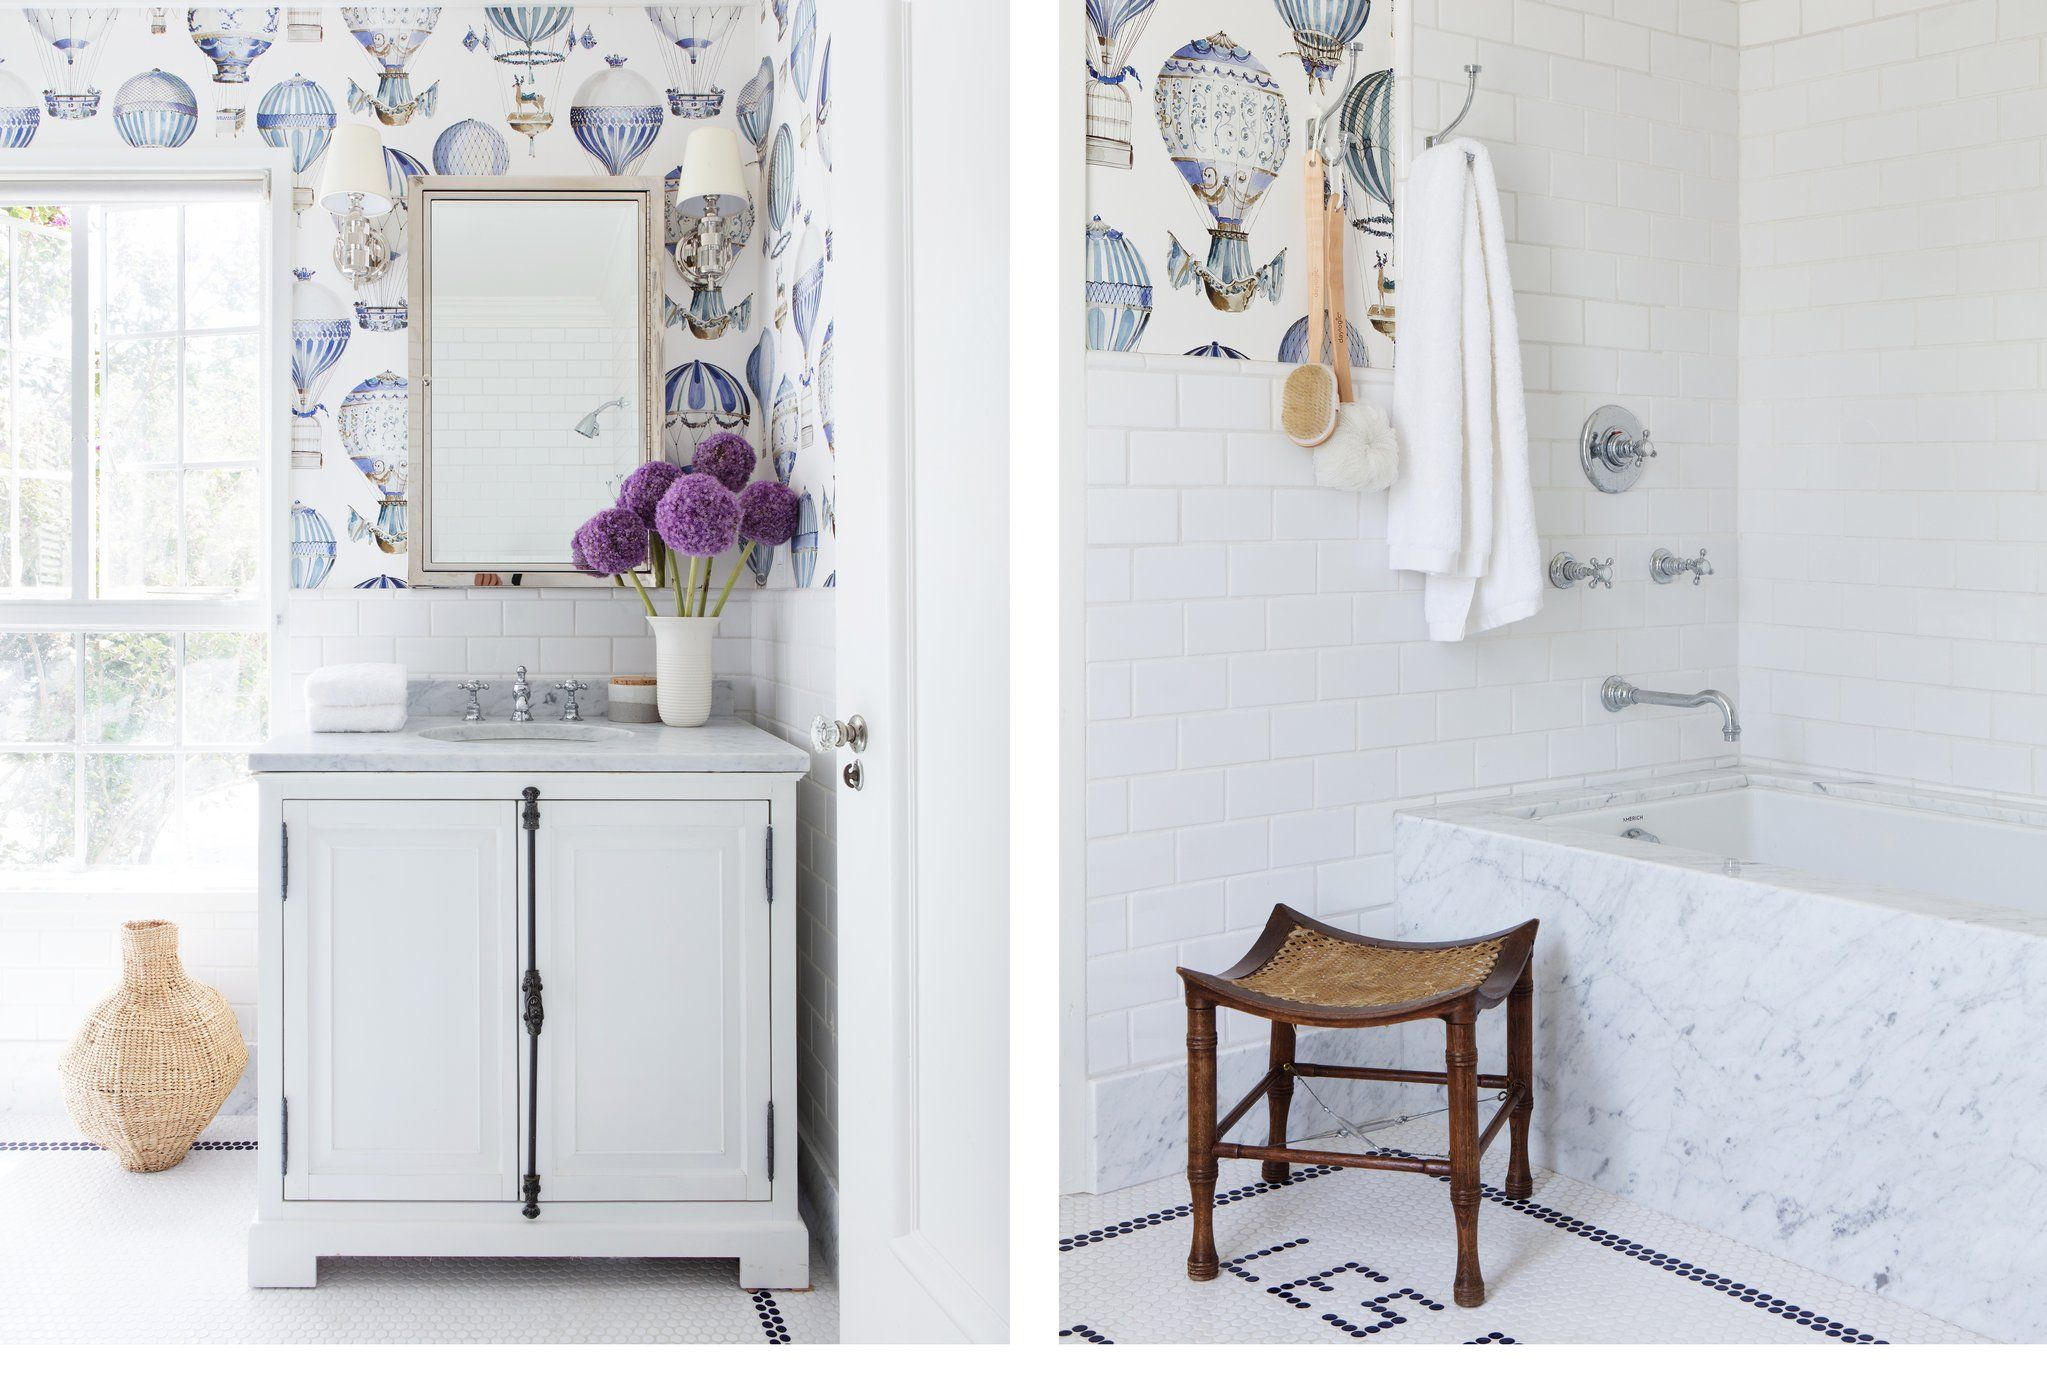 28 Bathroom Wallpaper Ideas That Will Inspire You to be Bold - Wallpaper for Bathrooms